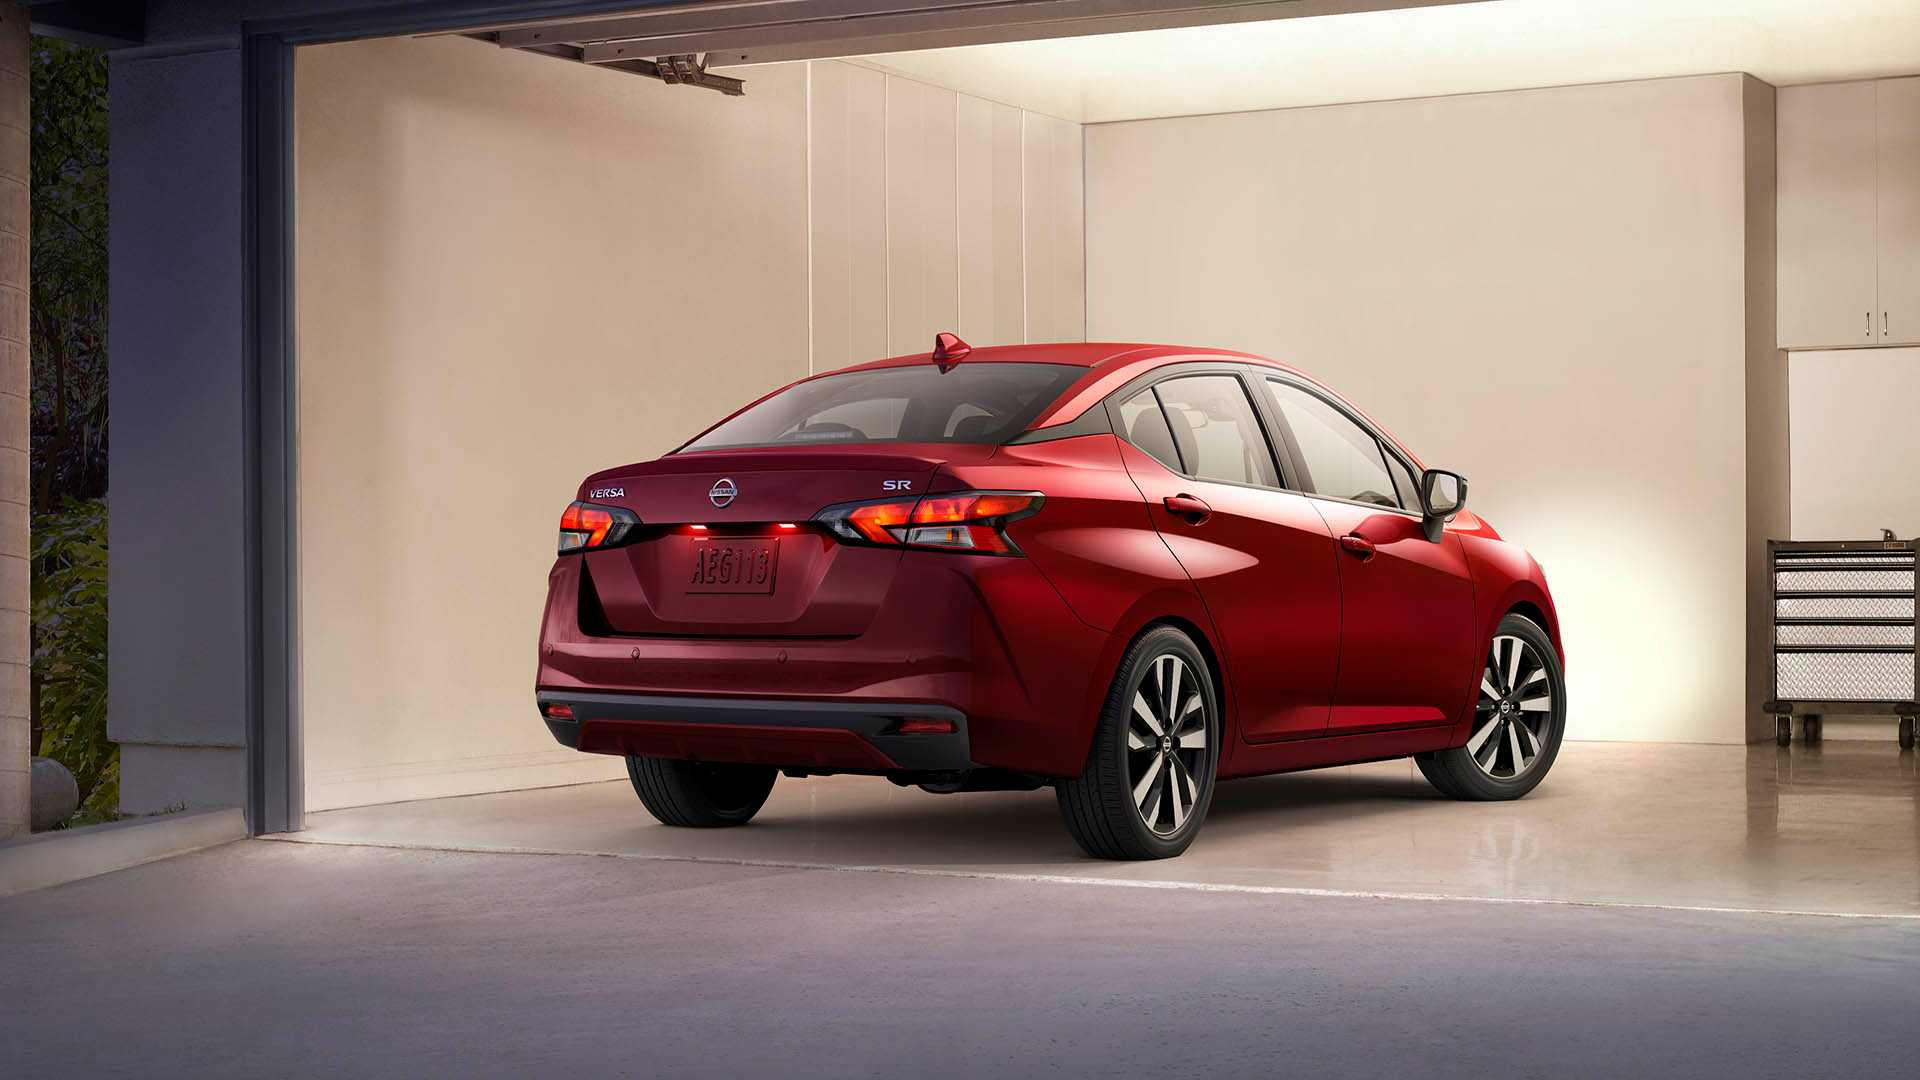 38 Concept of Nissan Versa 2020 Redesign and Concept with Nissan Versa 2020